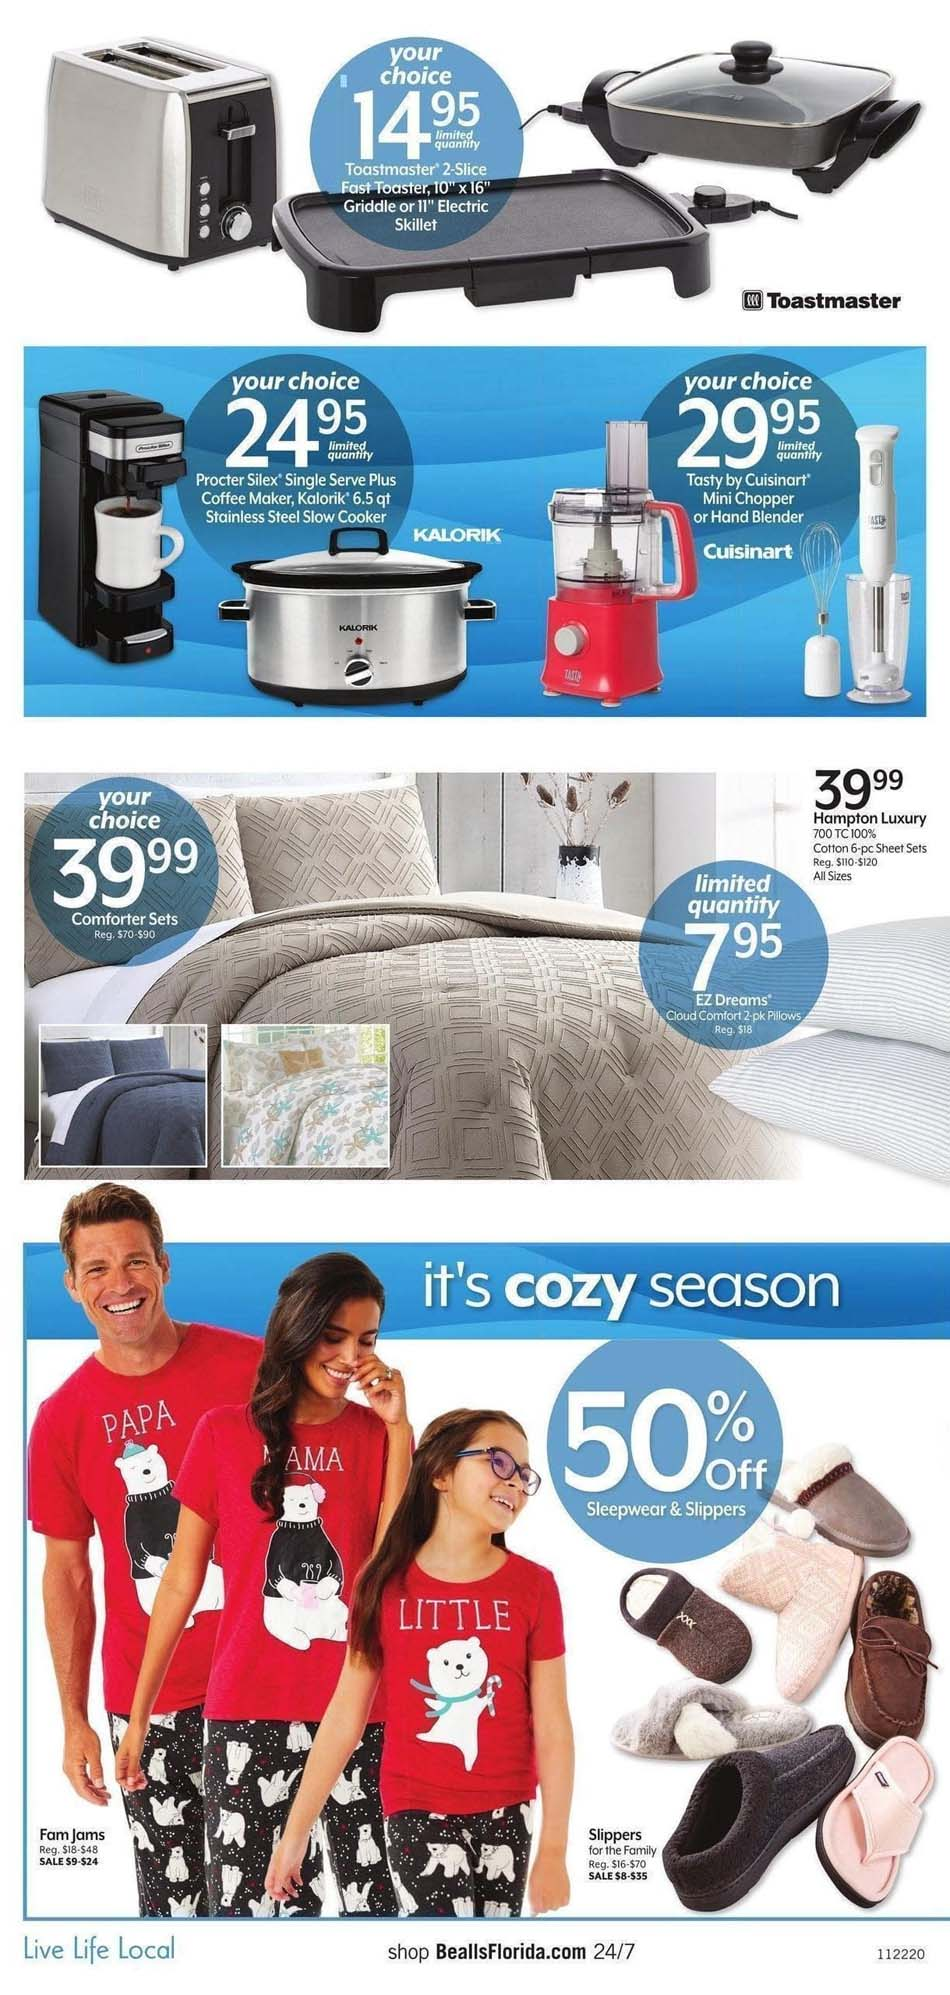 Bealls Florida Black Friday 2020 Page 4